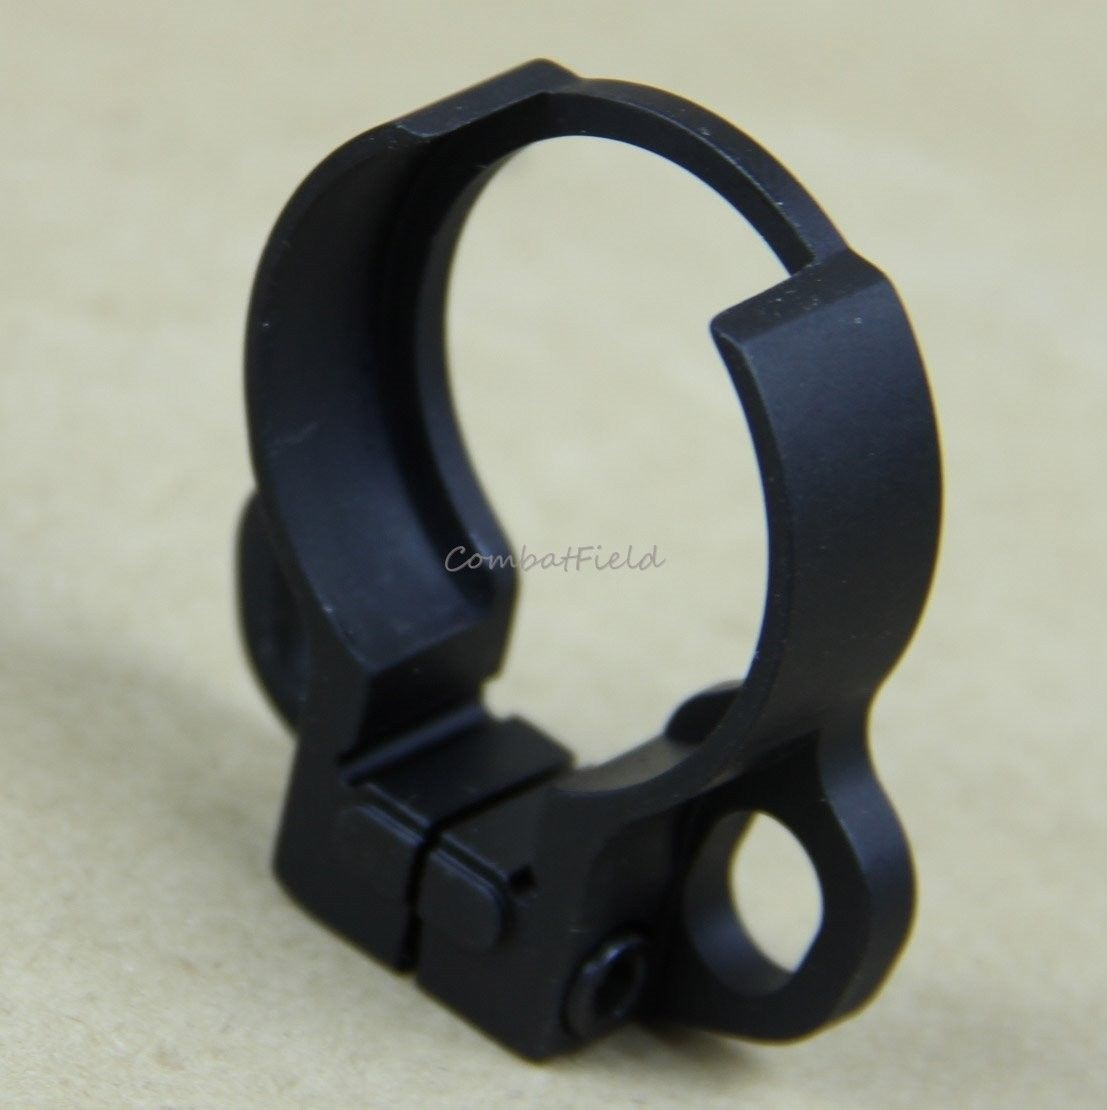 1 one point bungee sling clamp on slip over castle nut adapter